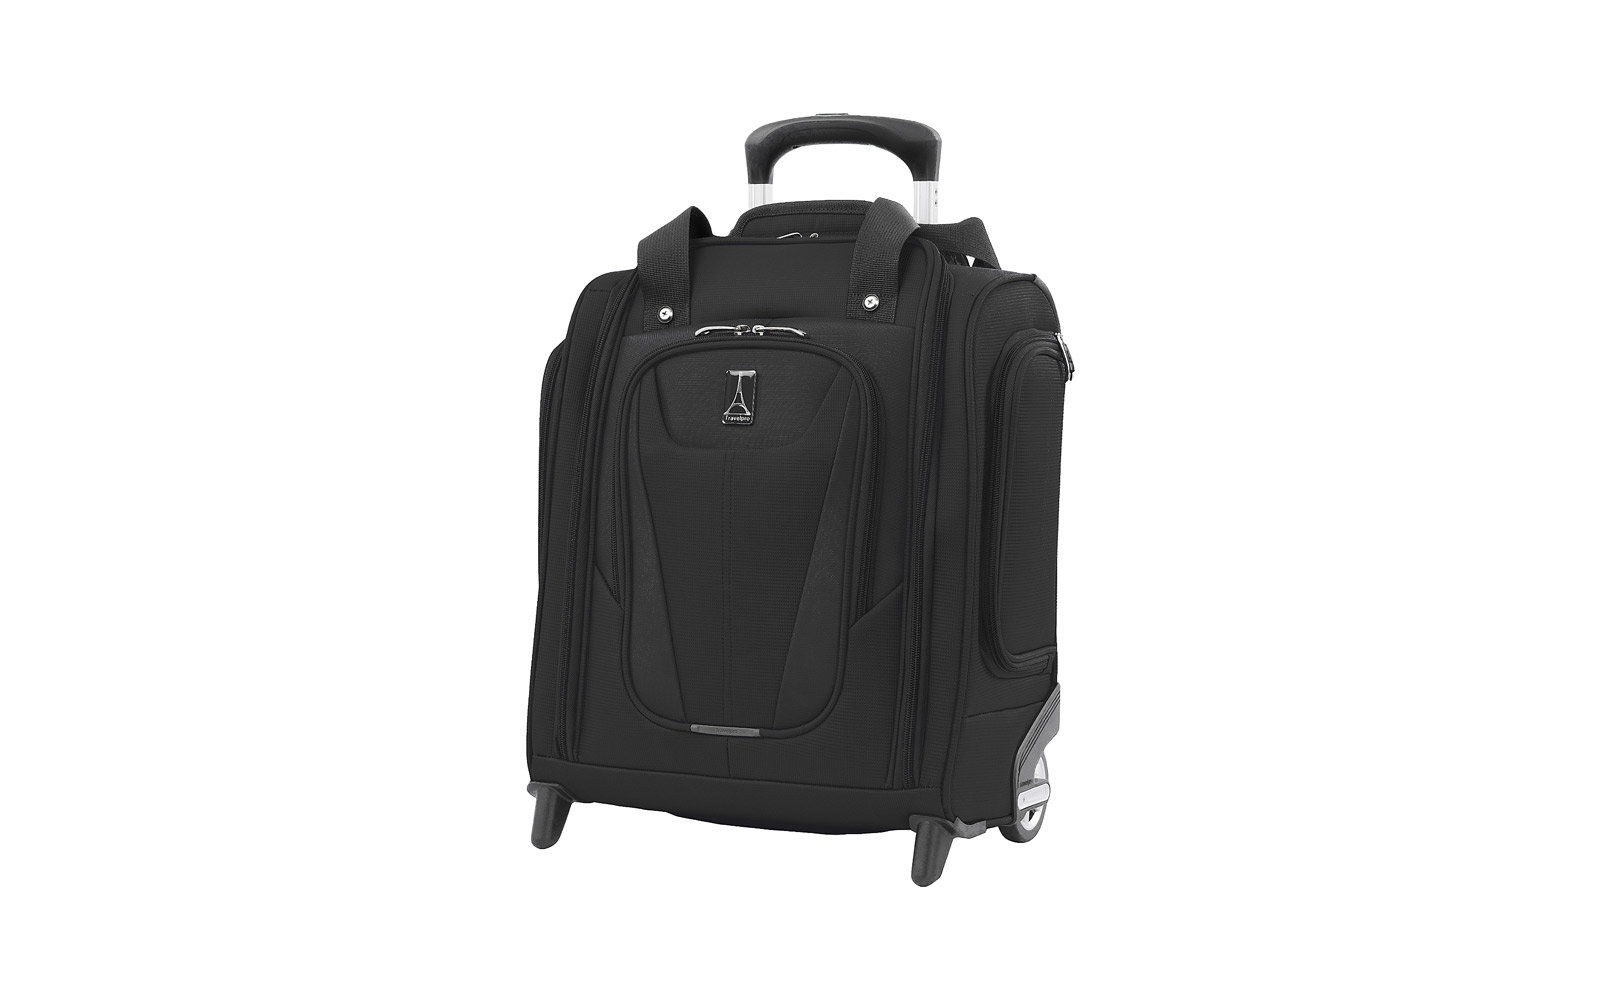 Best Underseat Carry-on: Travelpro Maxlite 5 Rolling Underseat Carry-on Bag